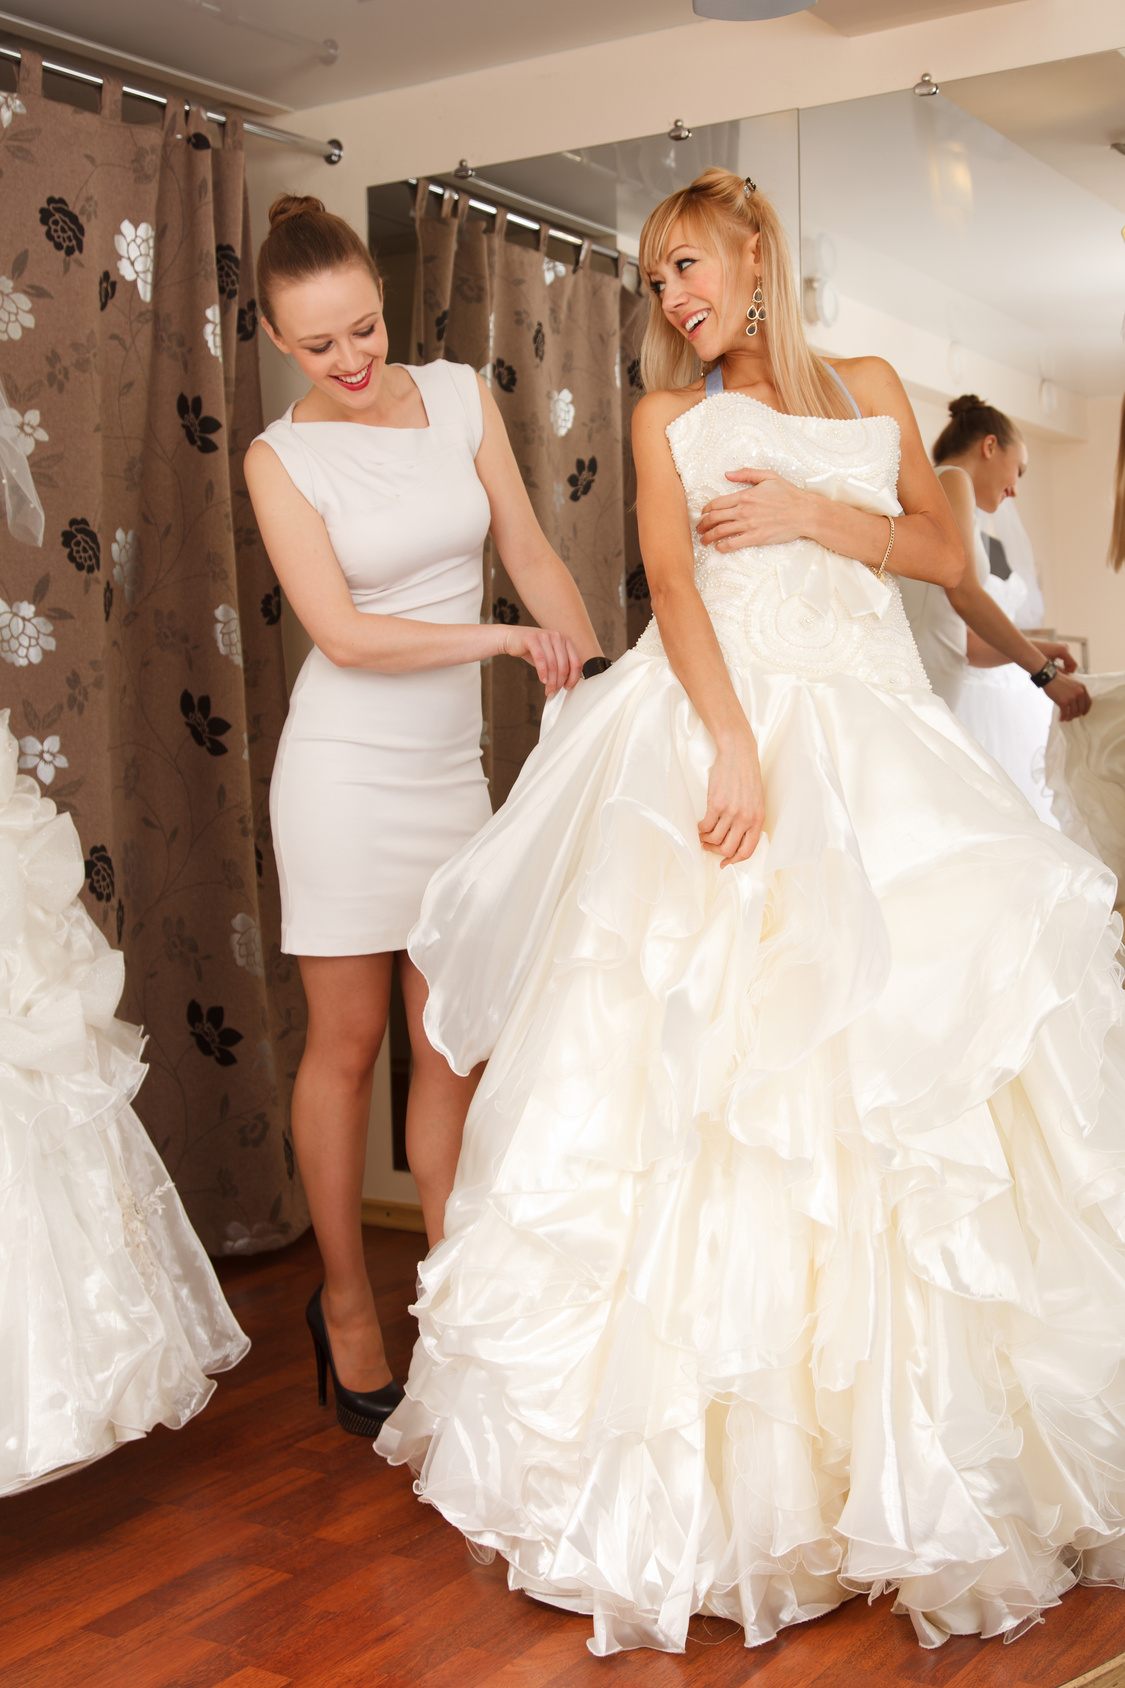 Should the Bride Wear White to Her Second Wedding? – Sarah Weddings